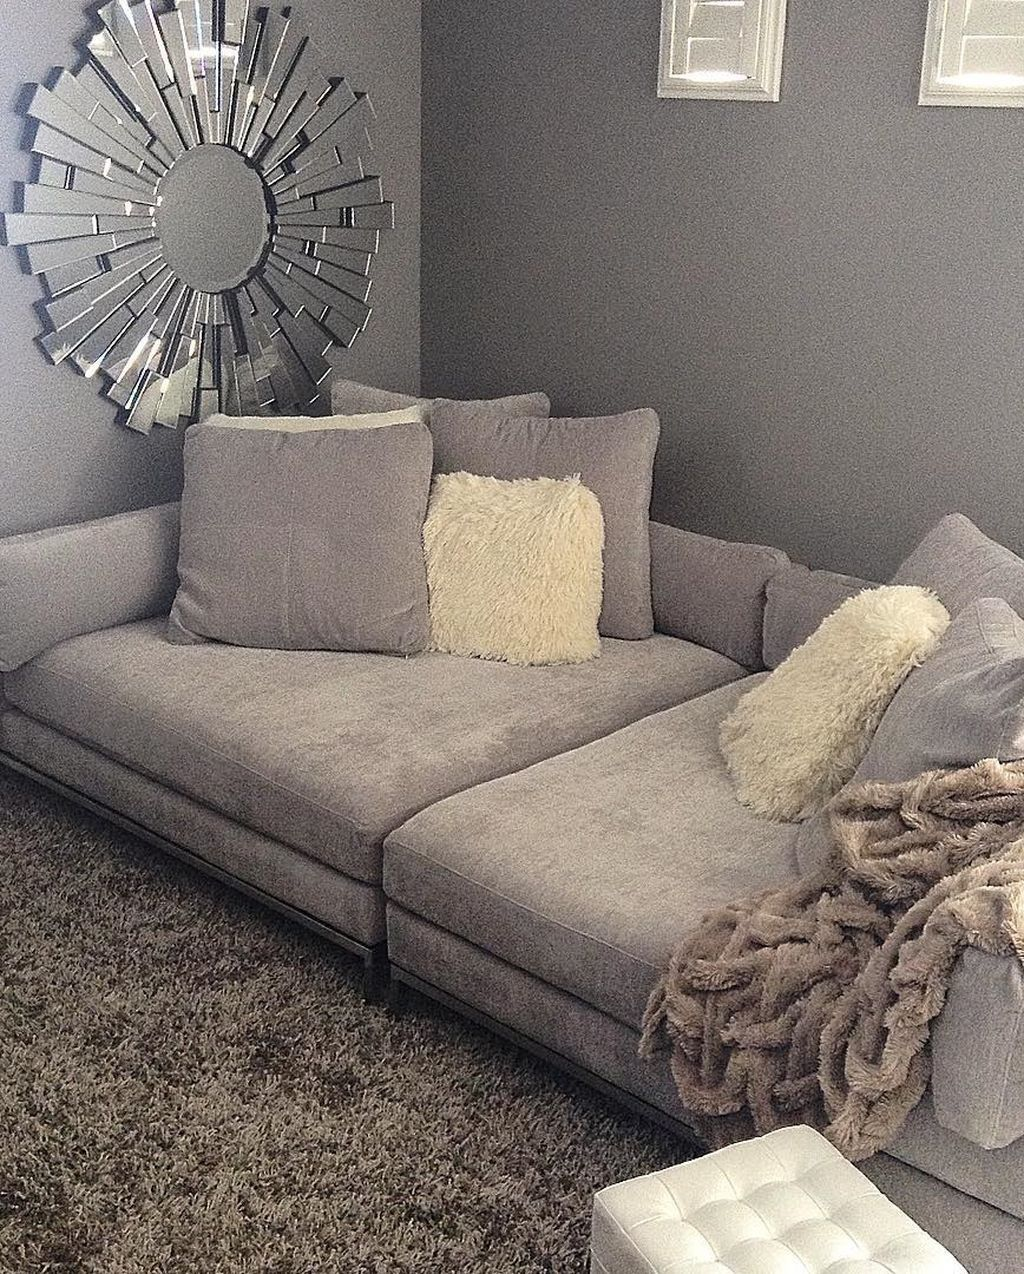 30 Stunning Deep Seated Sofa Sectional To Makes Your Room Get